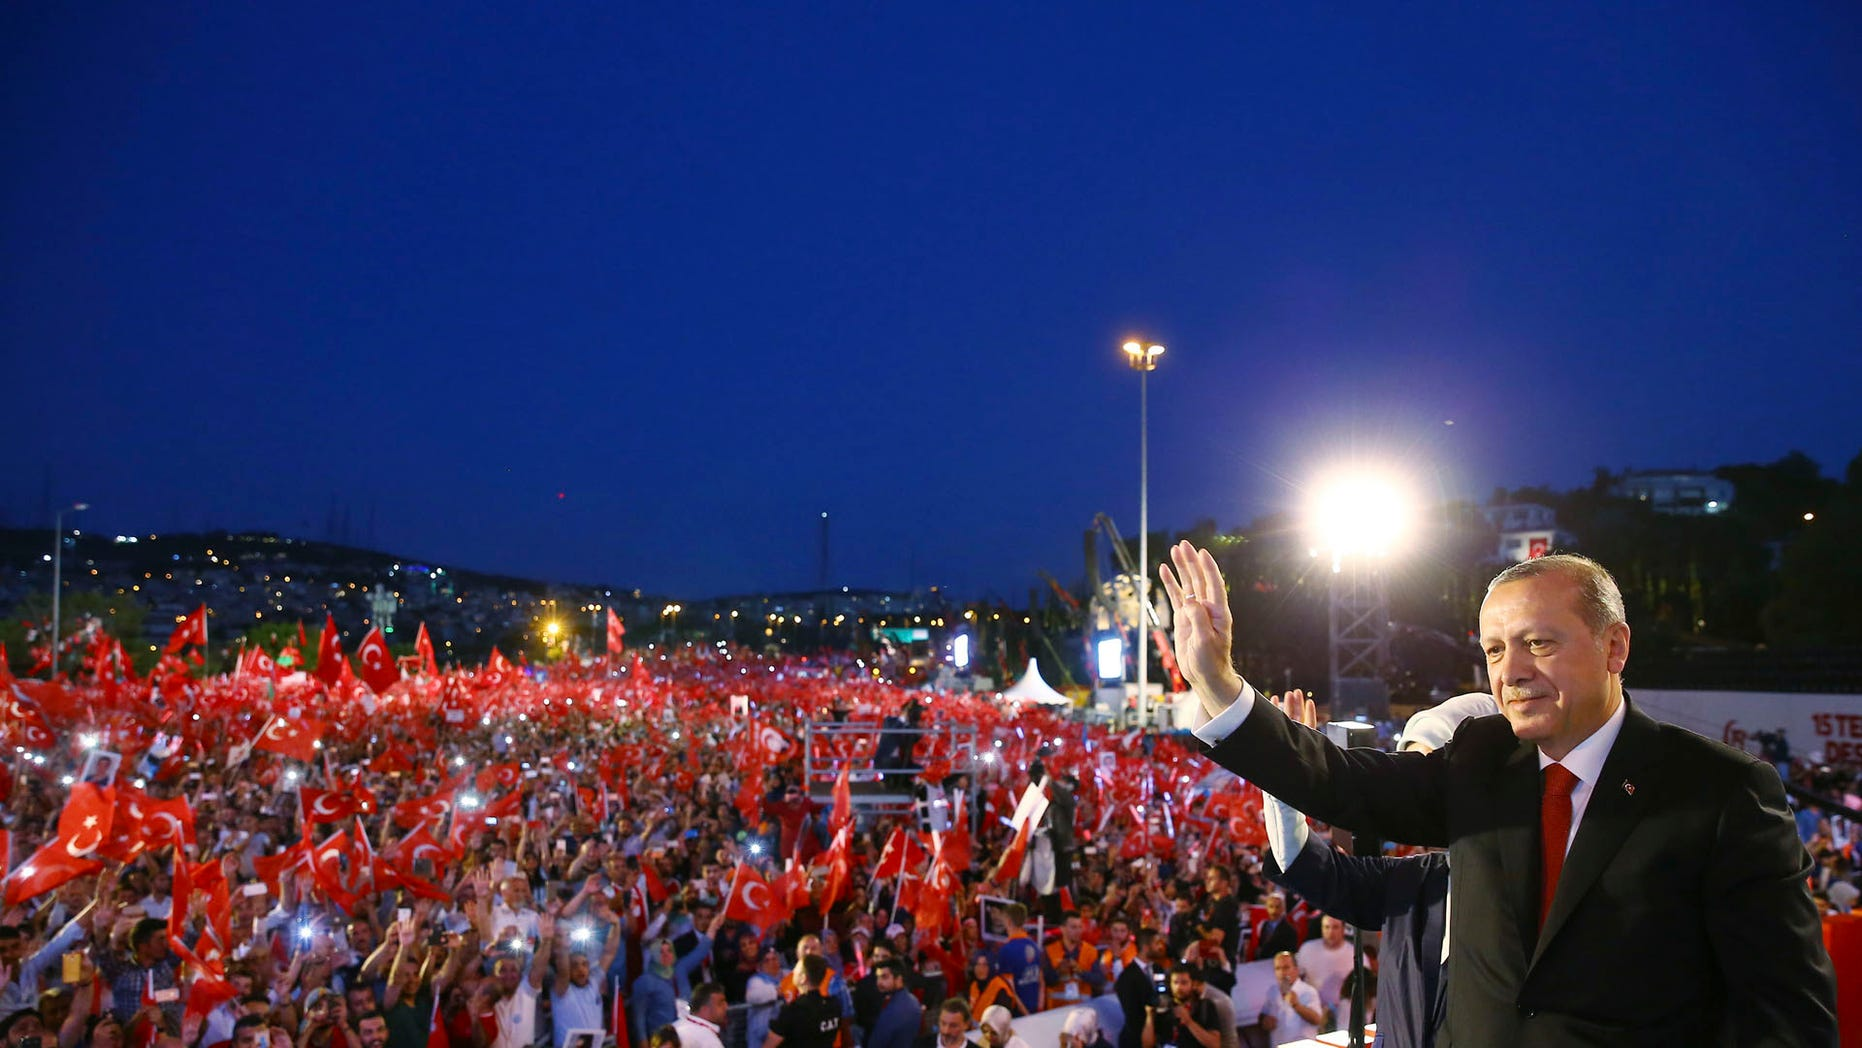 Turkey's President Recep Tayyip Erdogan waves to supporters in Istanbul.